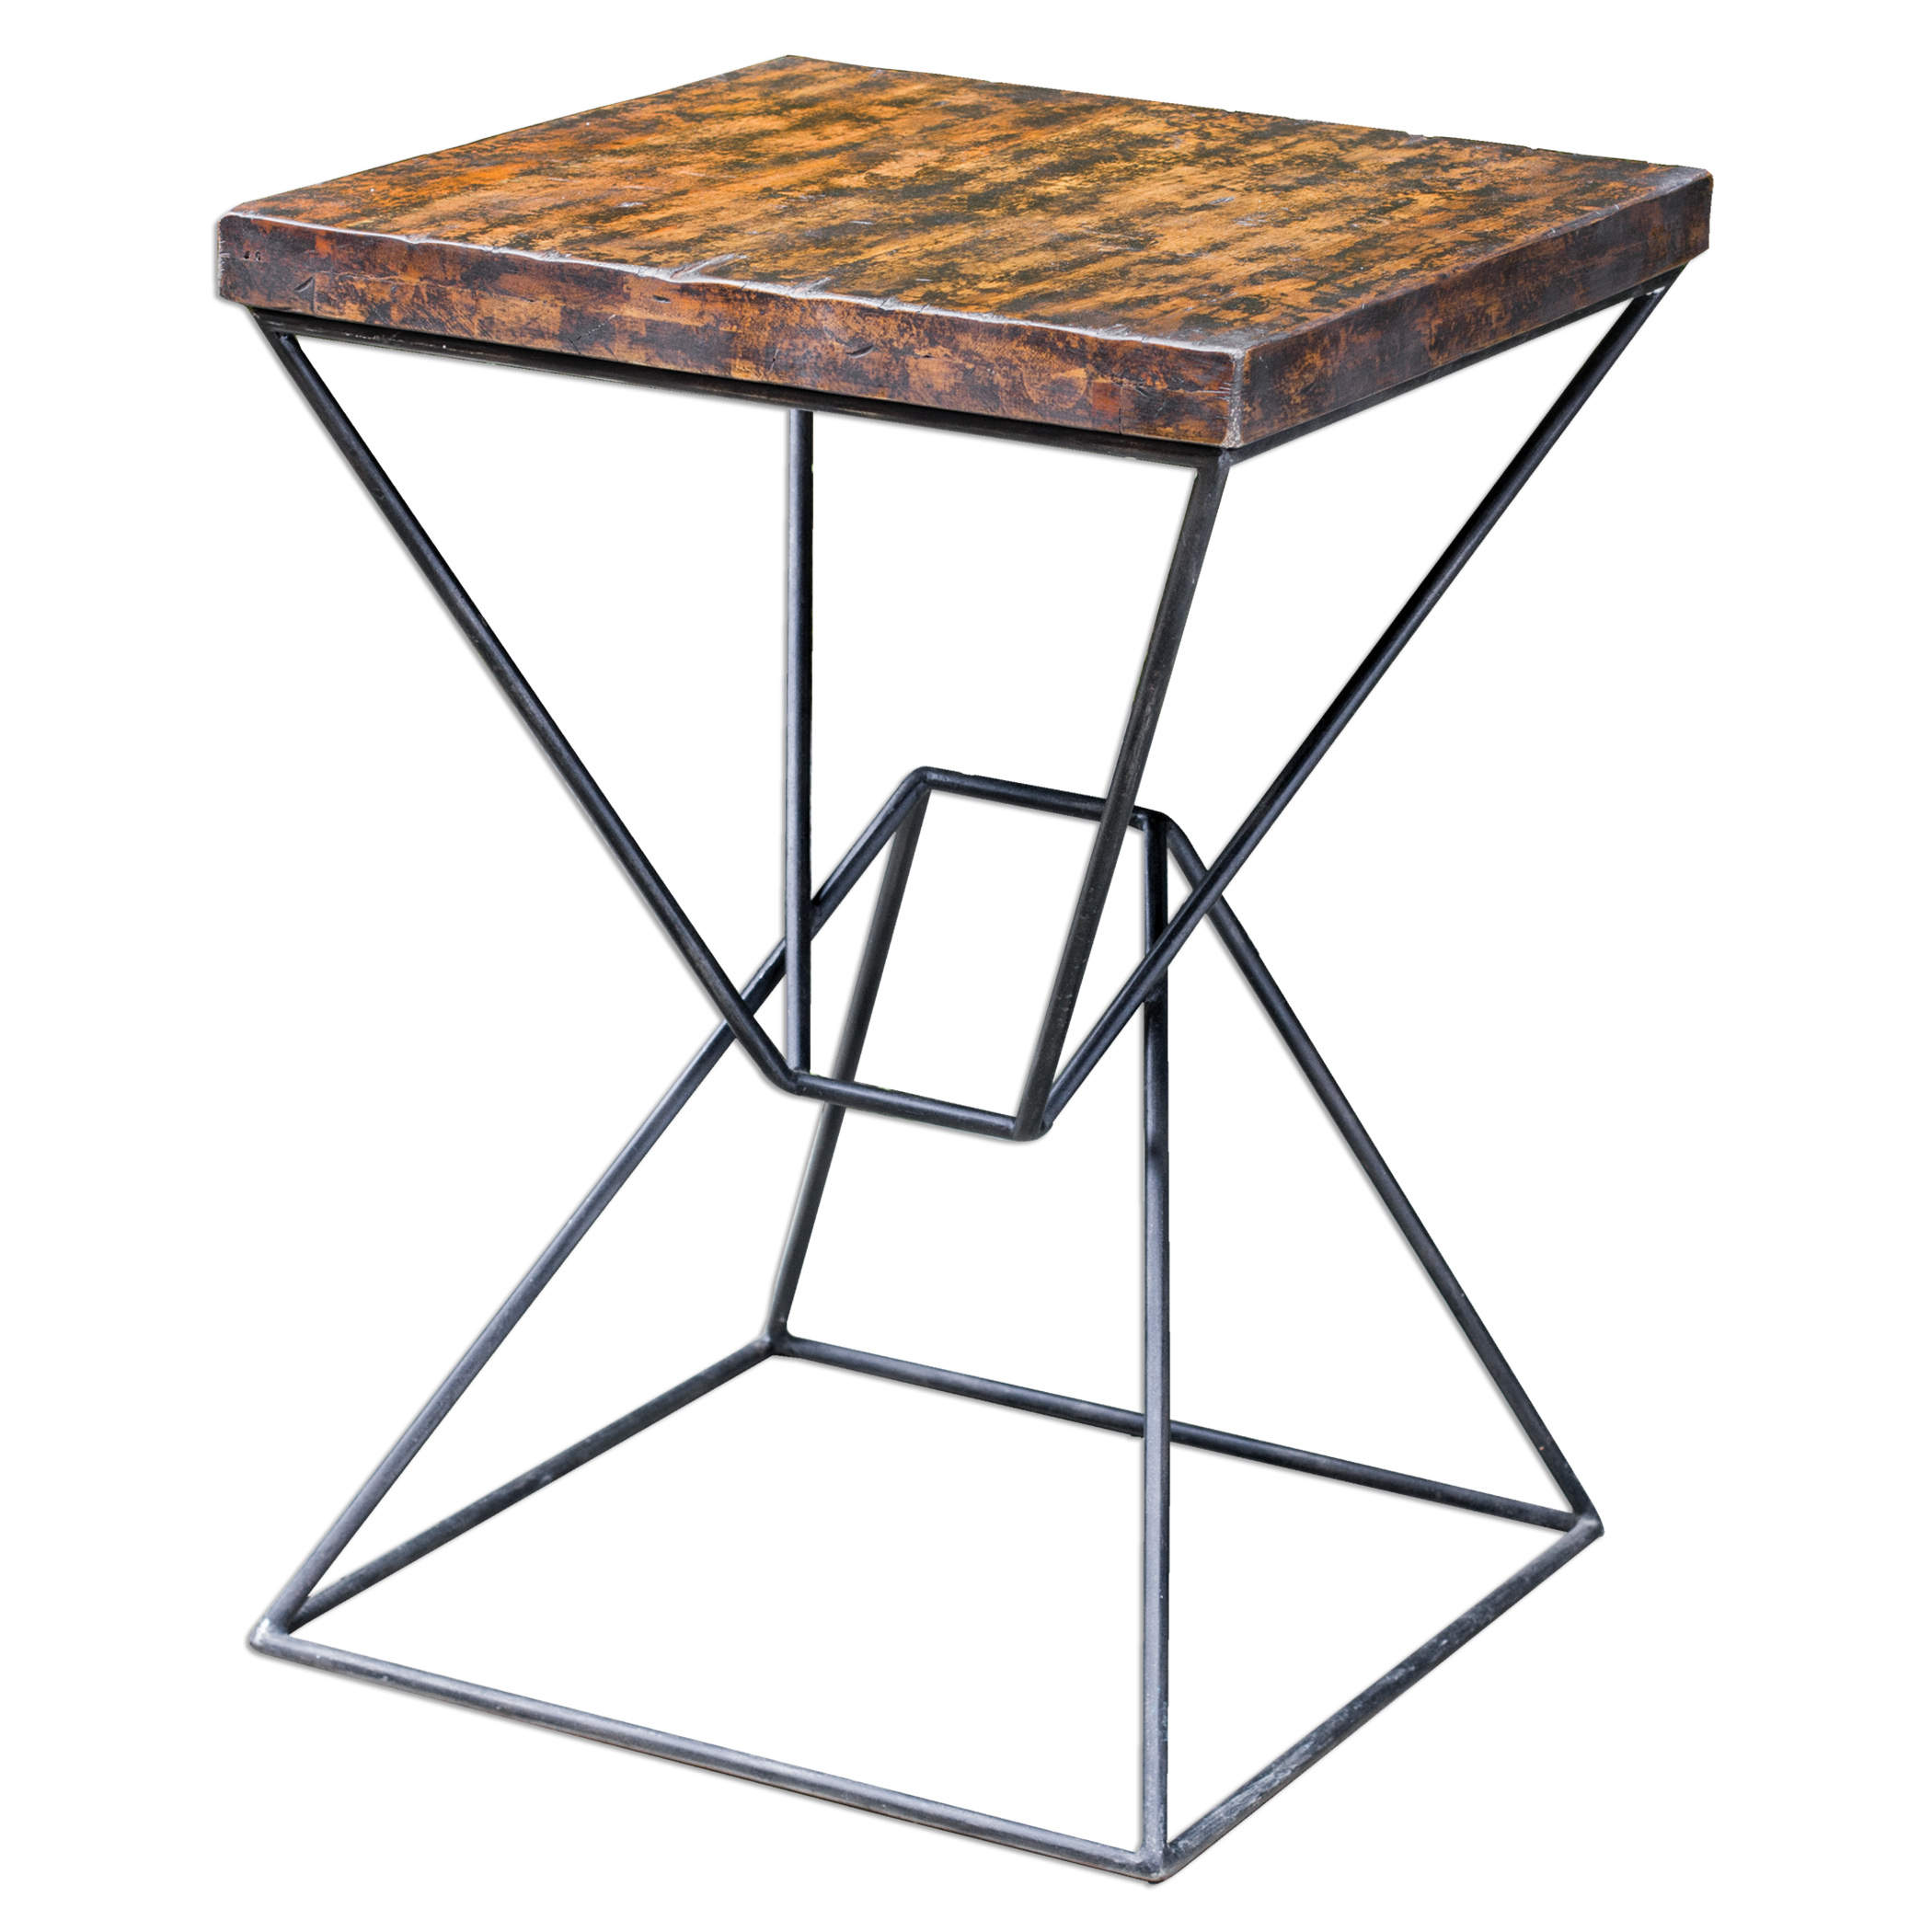 Uttermost Accent Furniture Naveen Modern Accent Table - Item Number: 25700